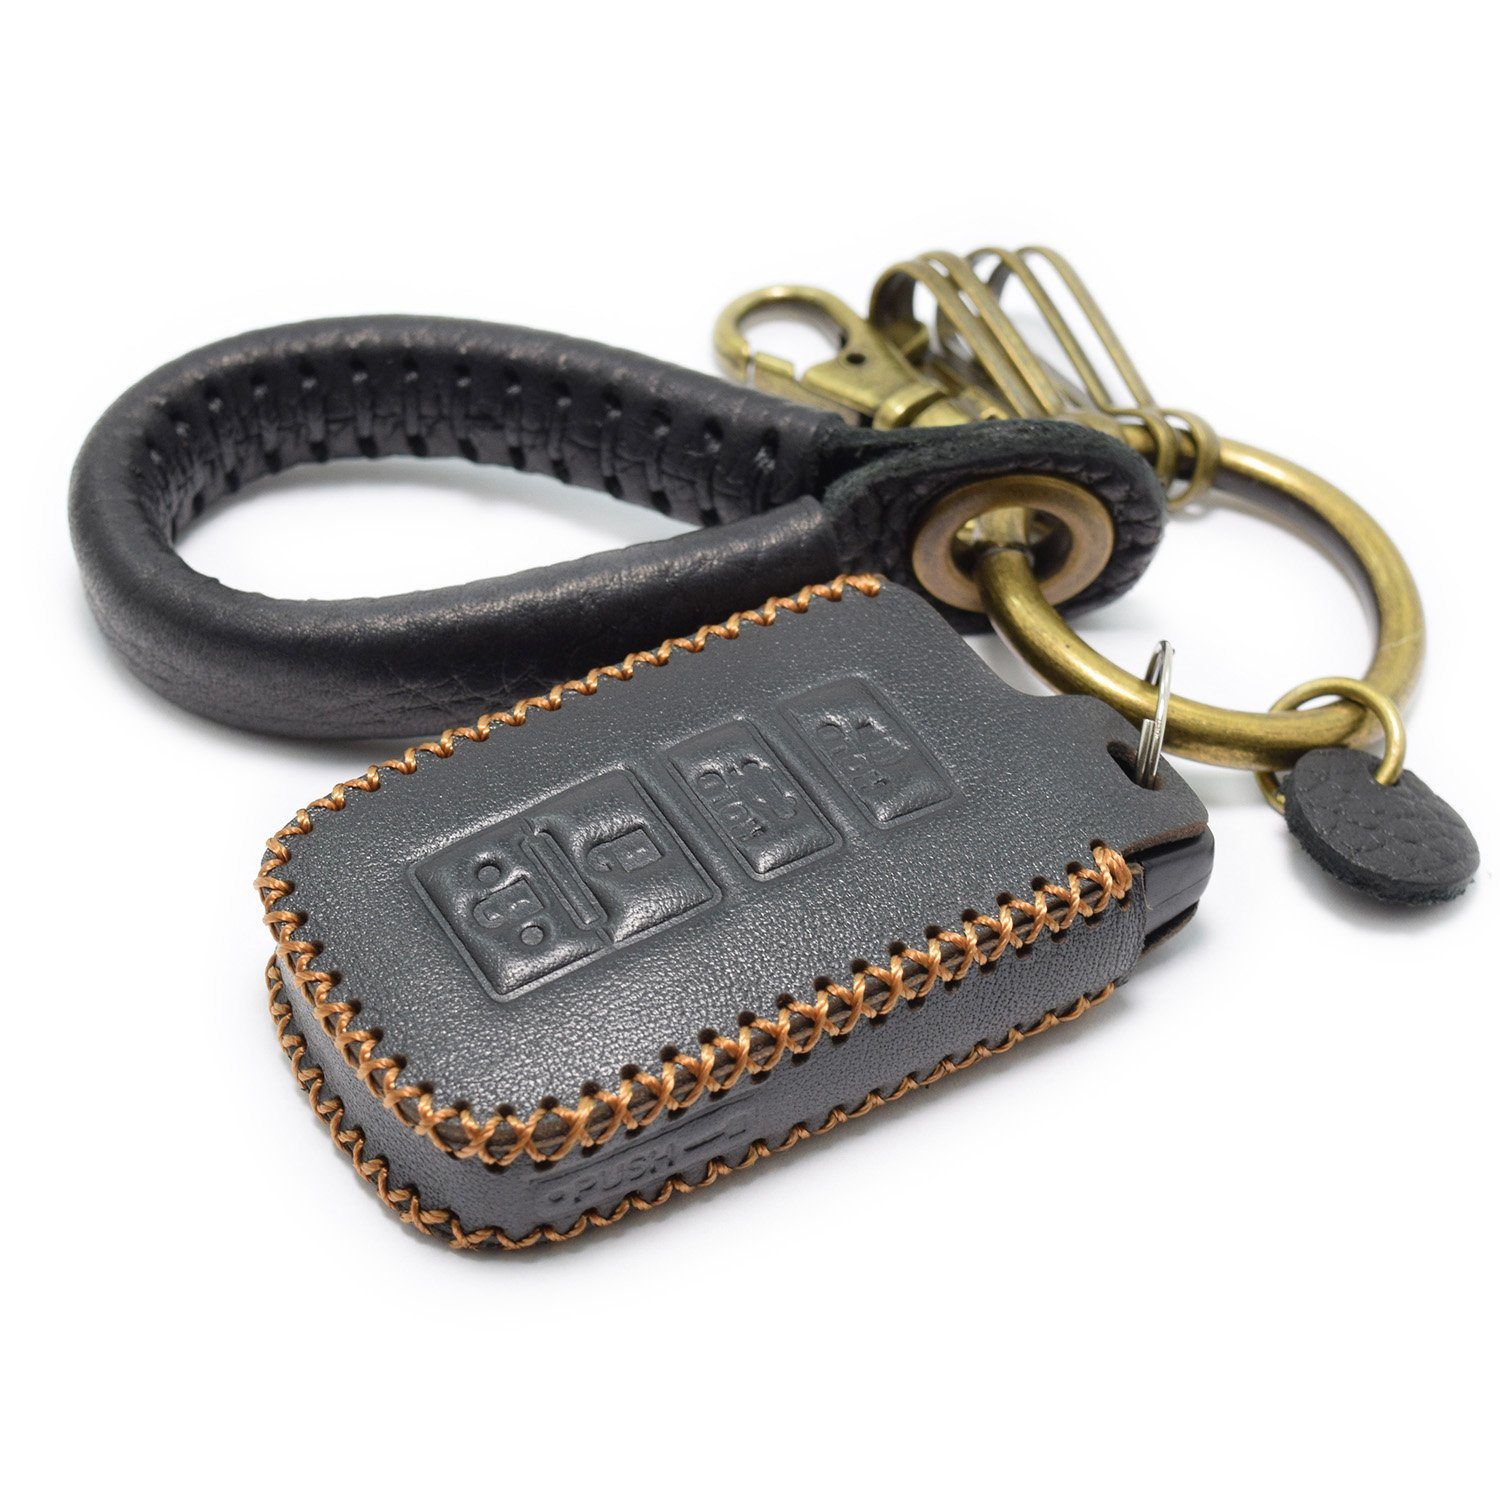 Black Leather 4 Buttons Remote Key Chain Cover For Toyota Camry Avalon Corolla